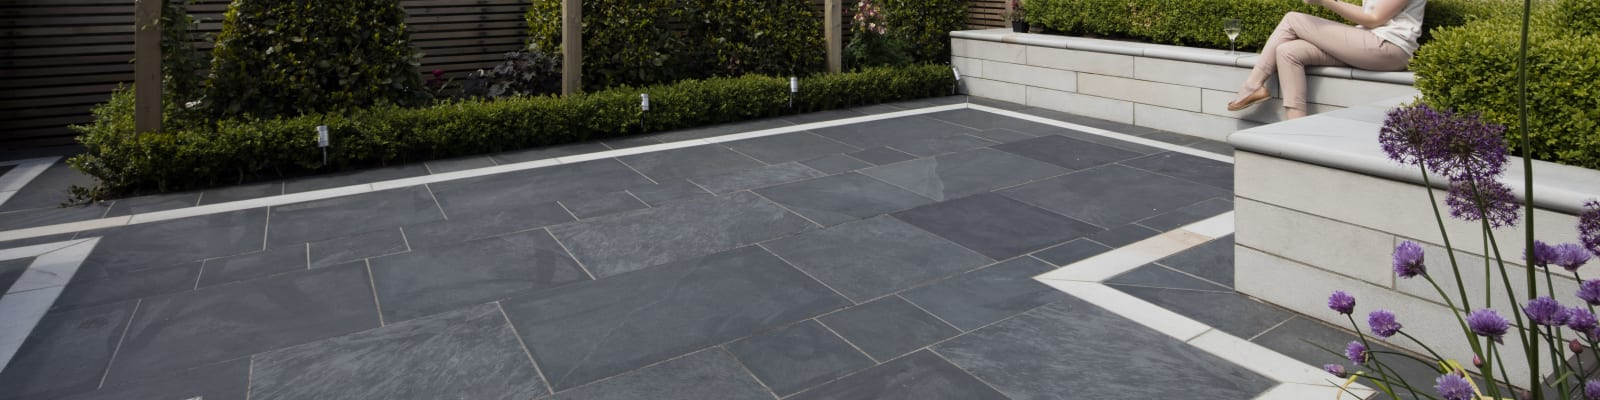 Design Patterns for Garden Paving Projects